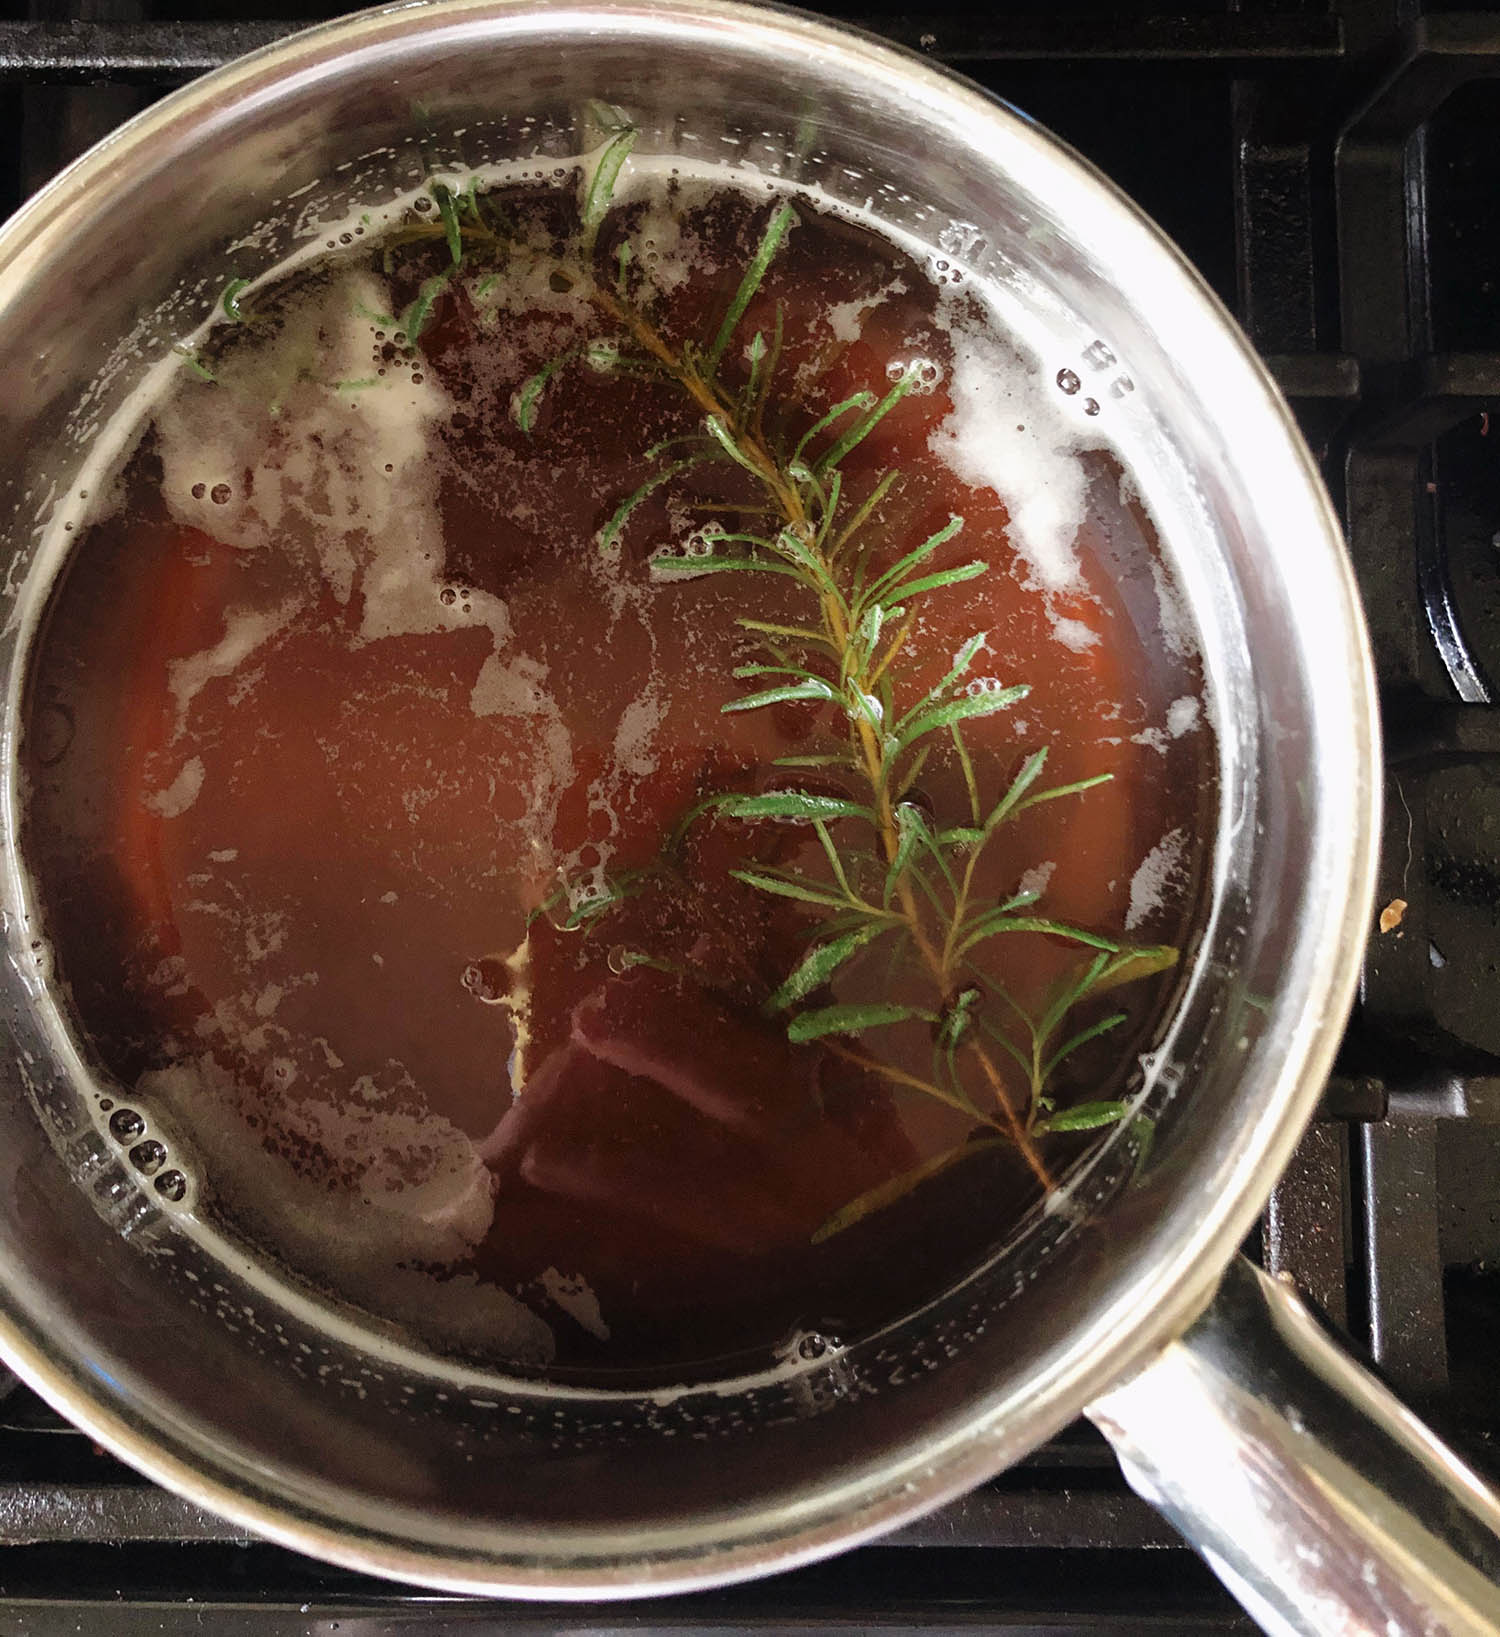 rosemary sprig in the honey syrup